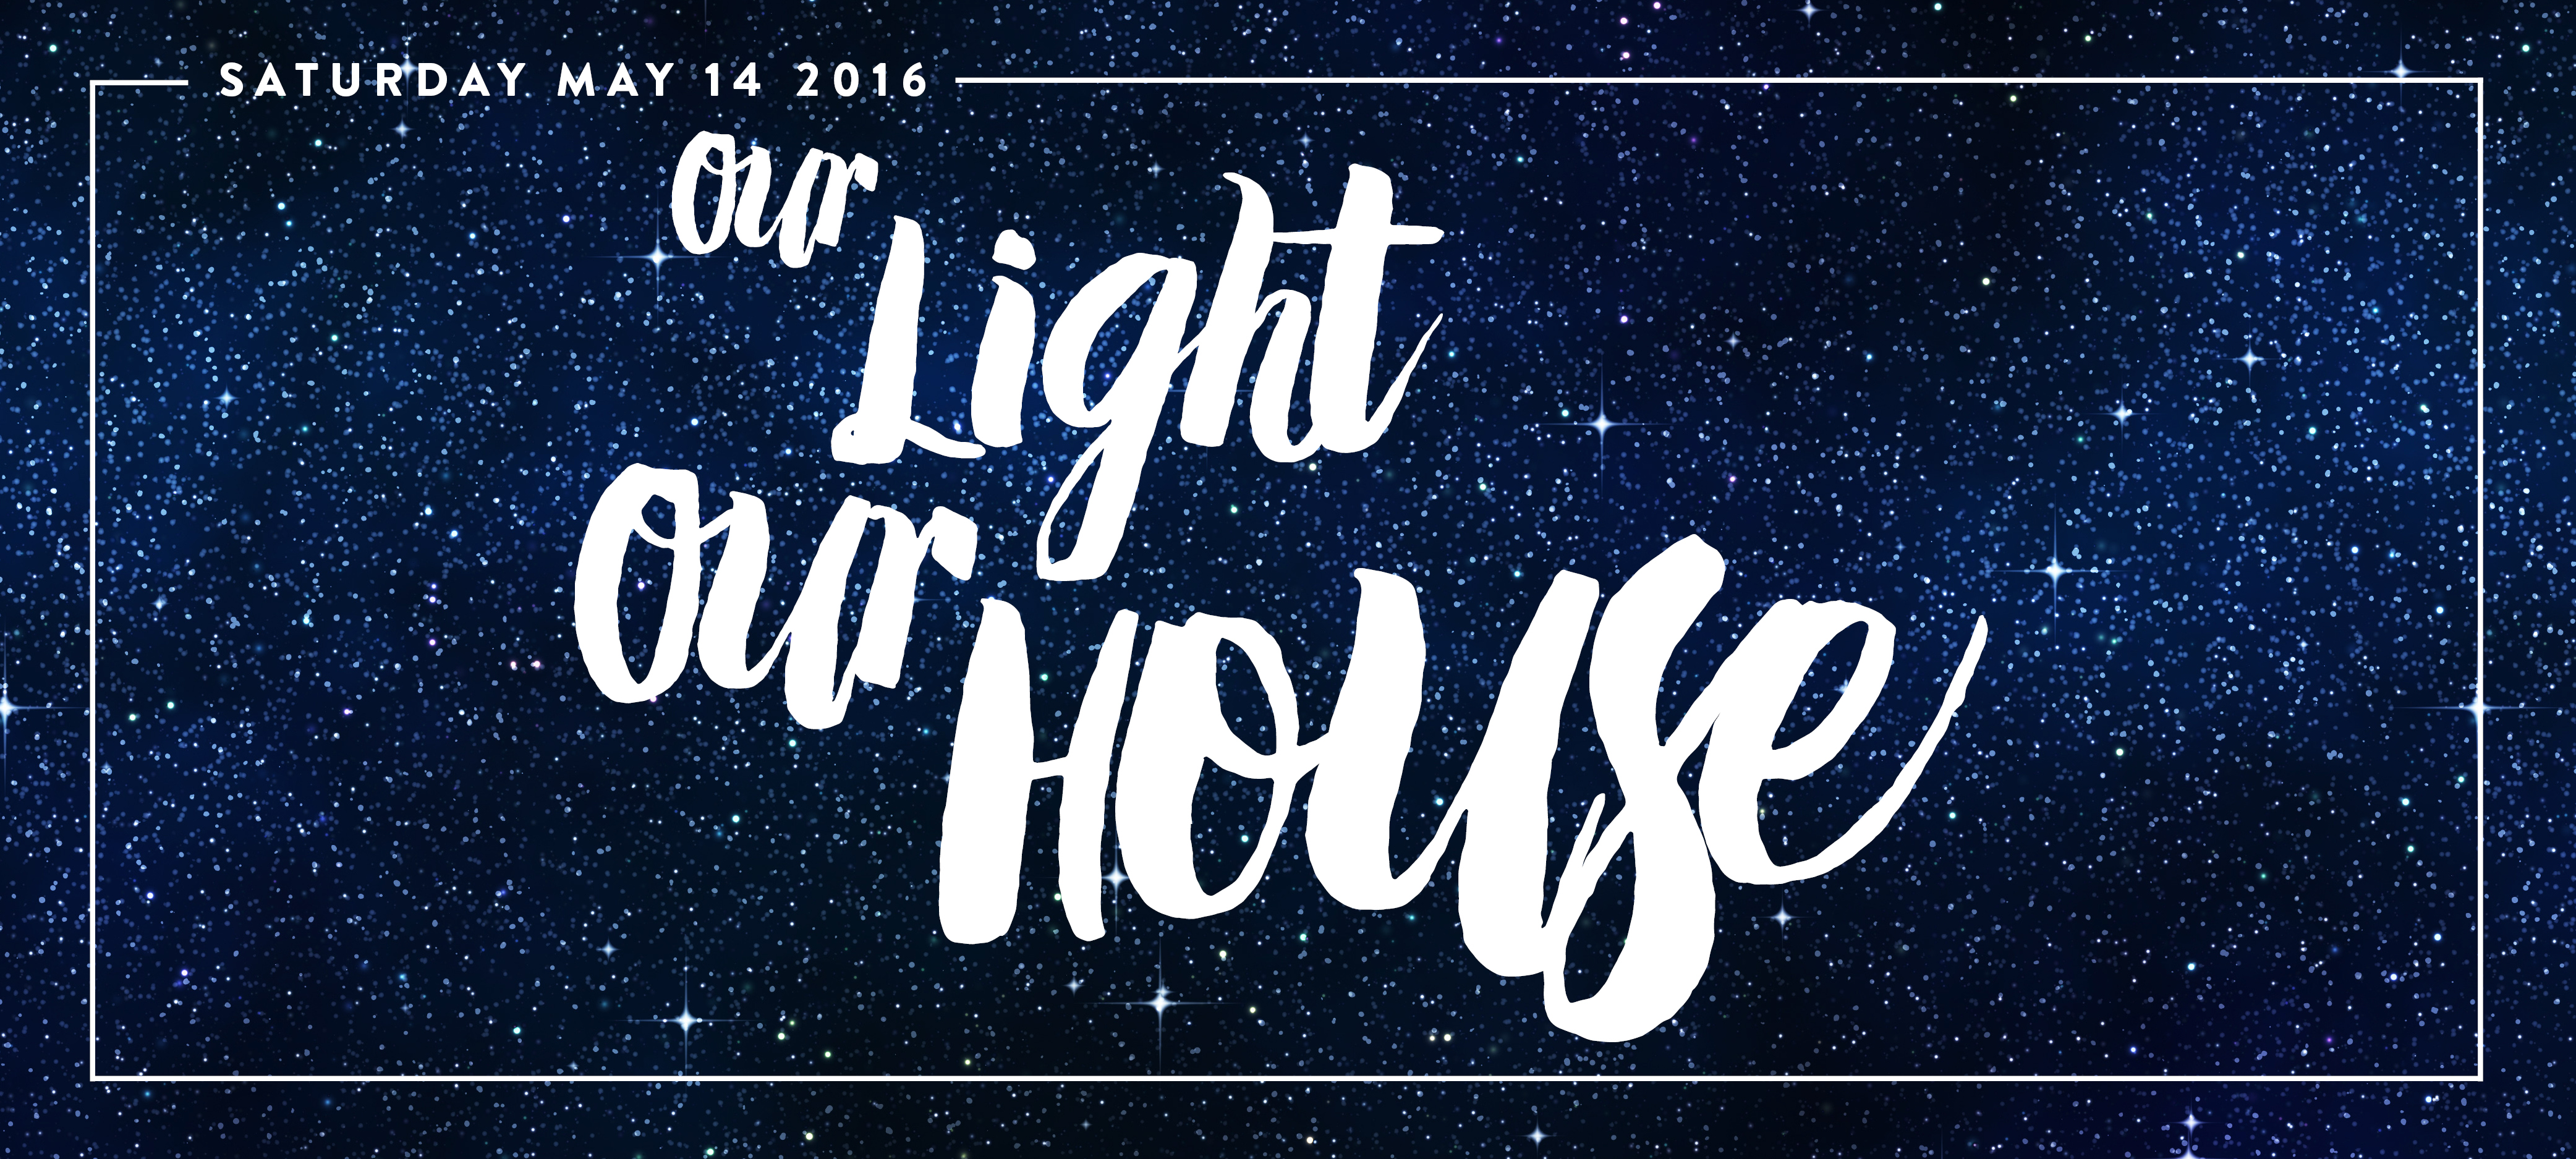 Our Light, Our House